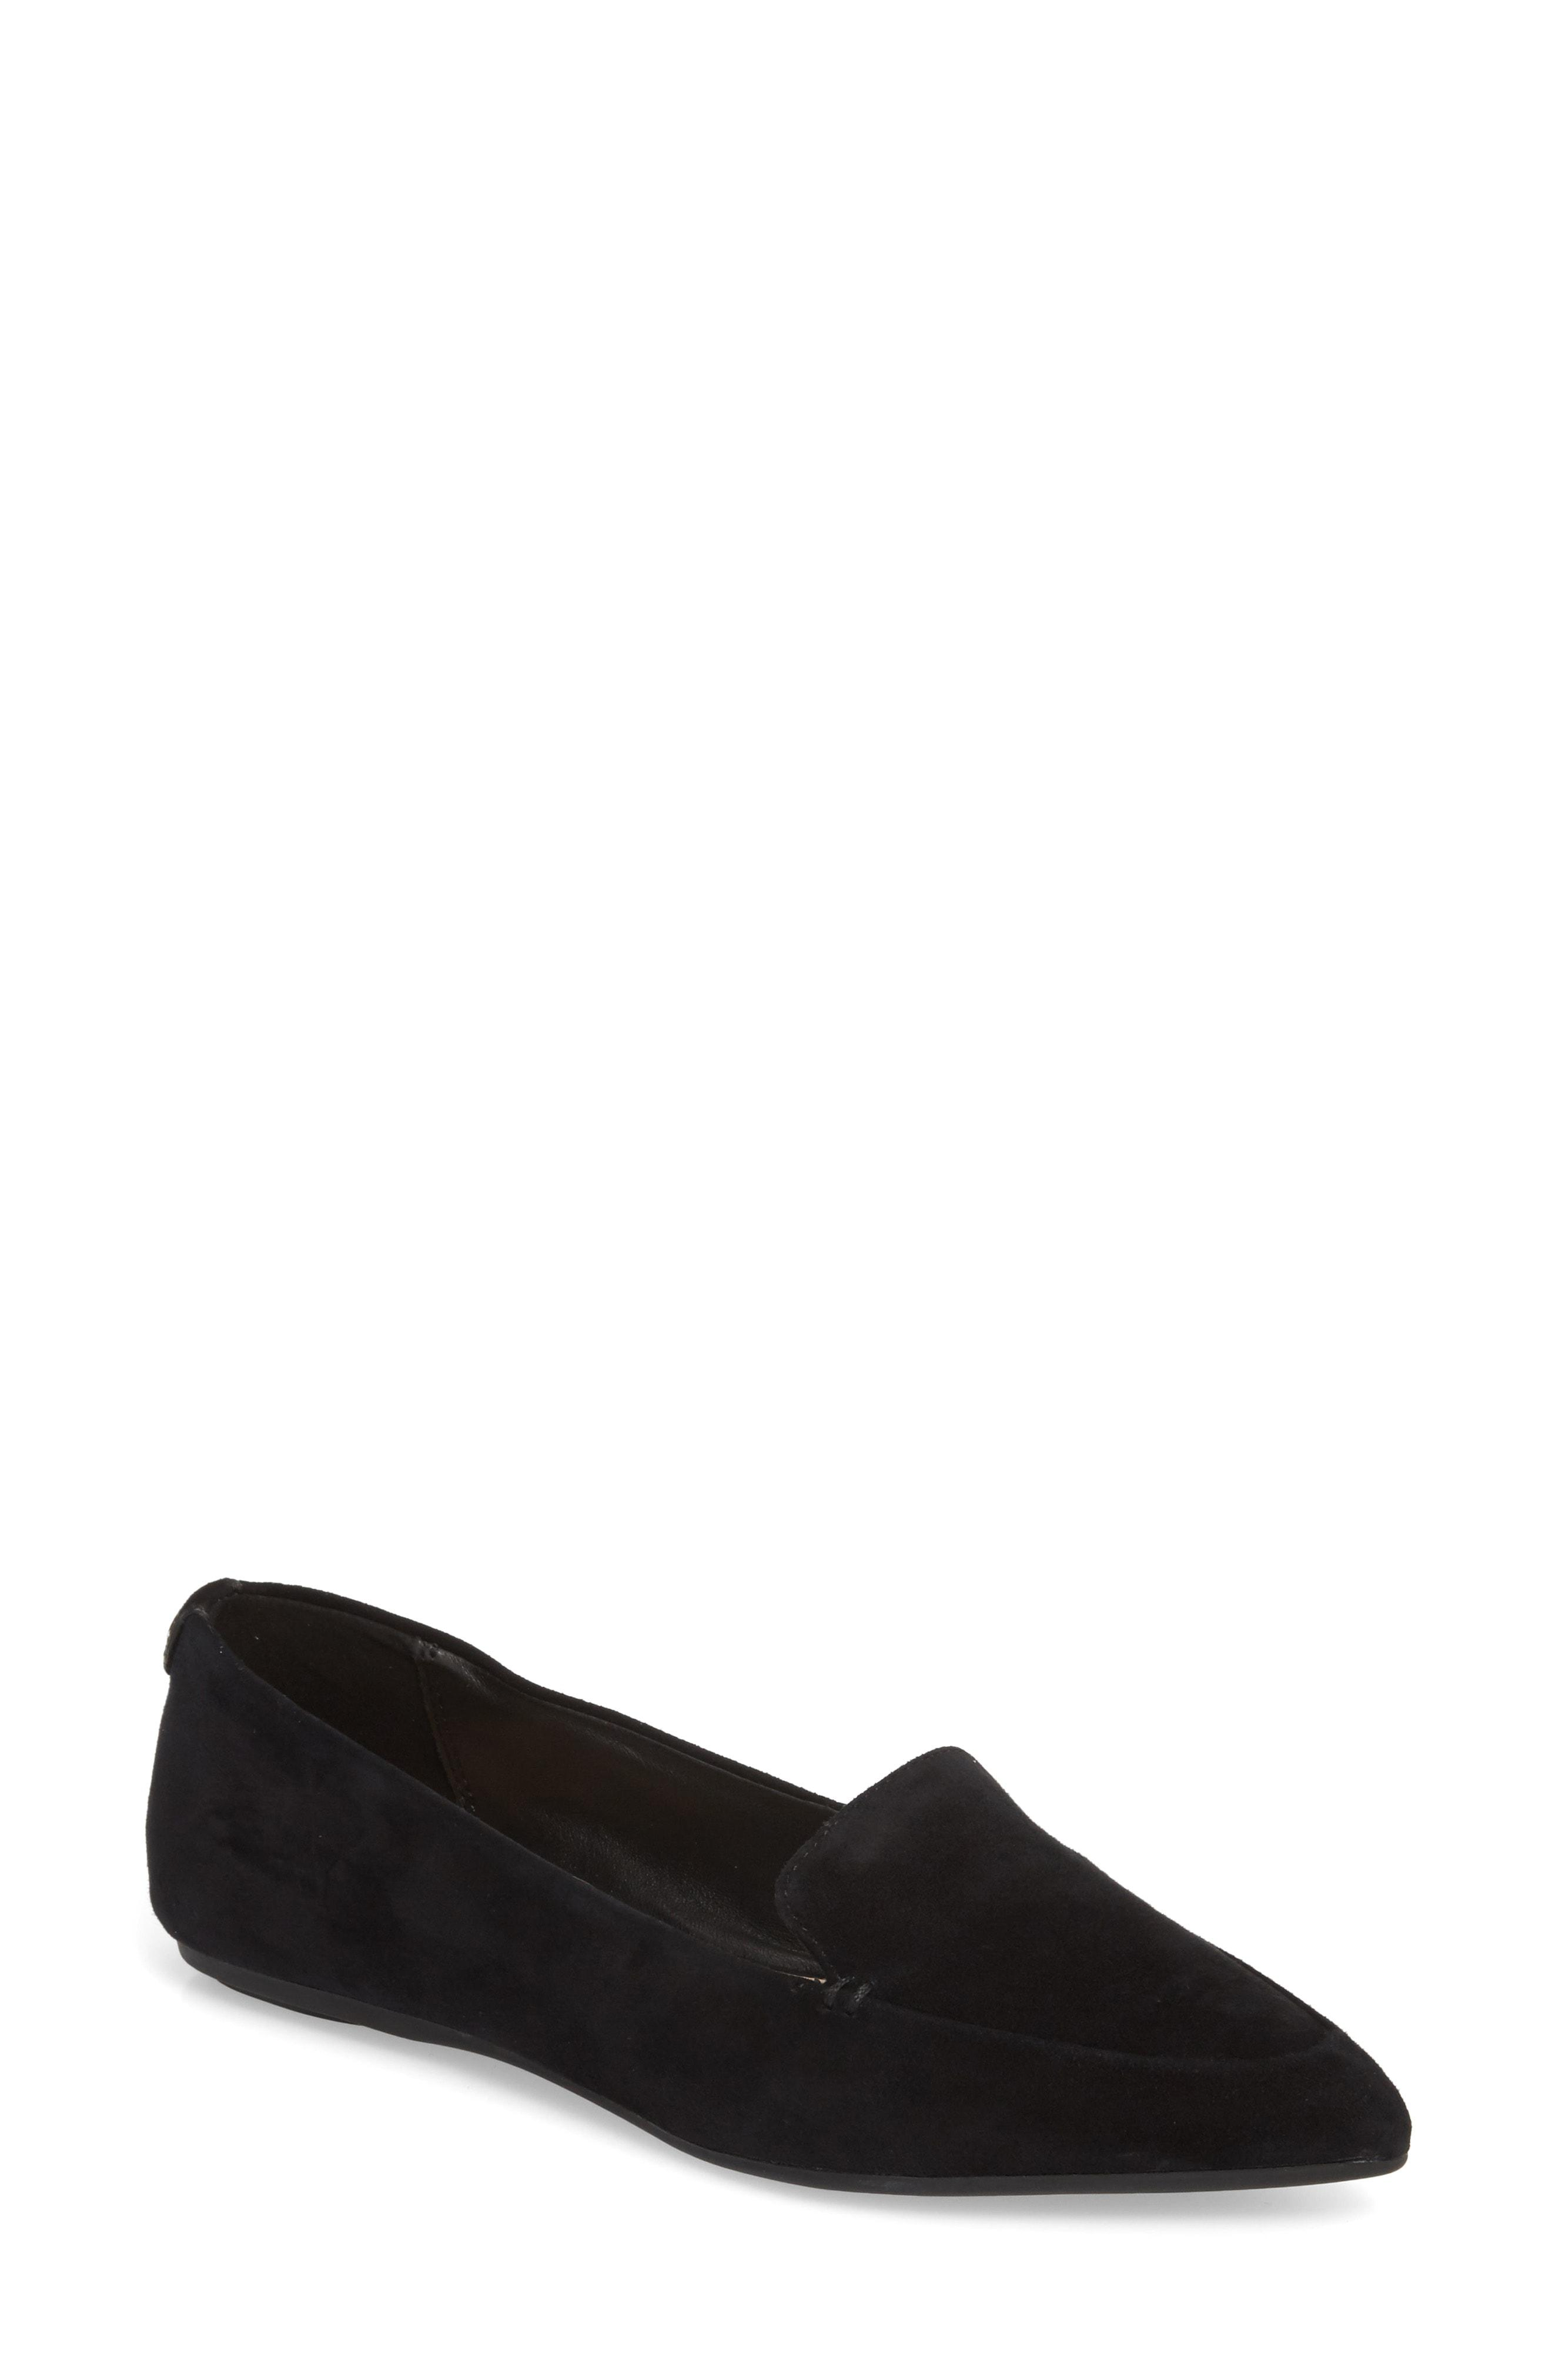 e8343478019 Taryn Rose Faye Pointy Toe Loafer in Black - Save 2% - Lyst